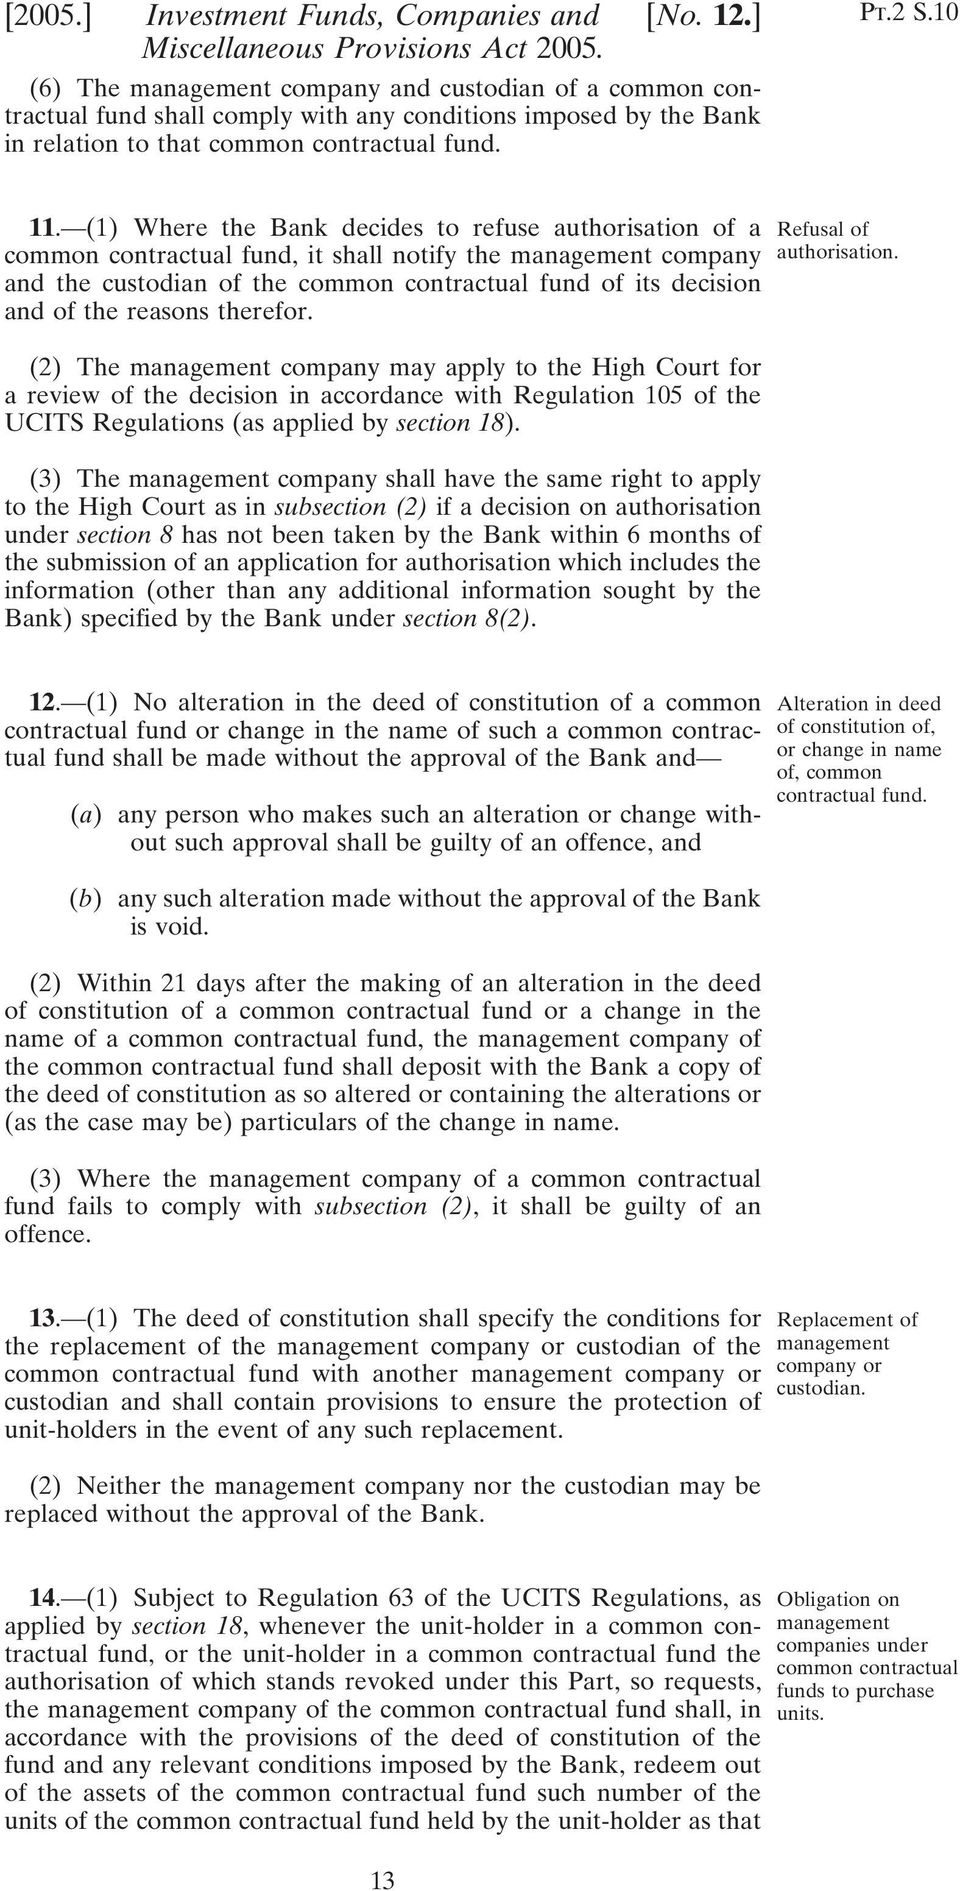 (1) Where the Bank decides to refuse authorisation of a common contractual fund, it shall notify the management company and the custodian of the common contractual fund of its decision and of the